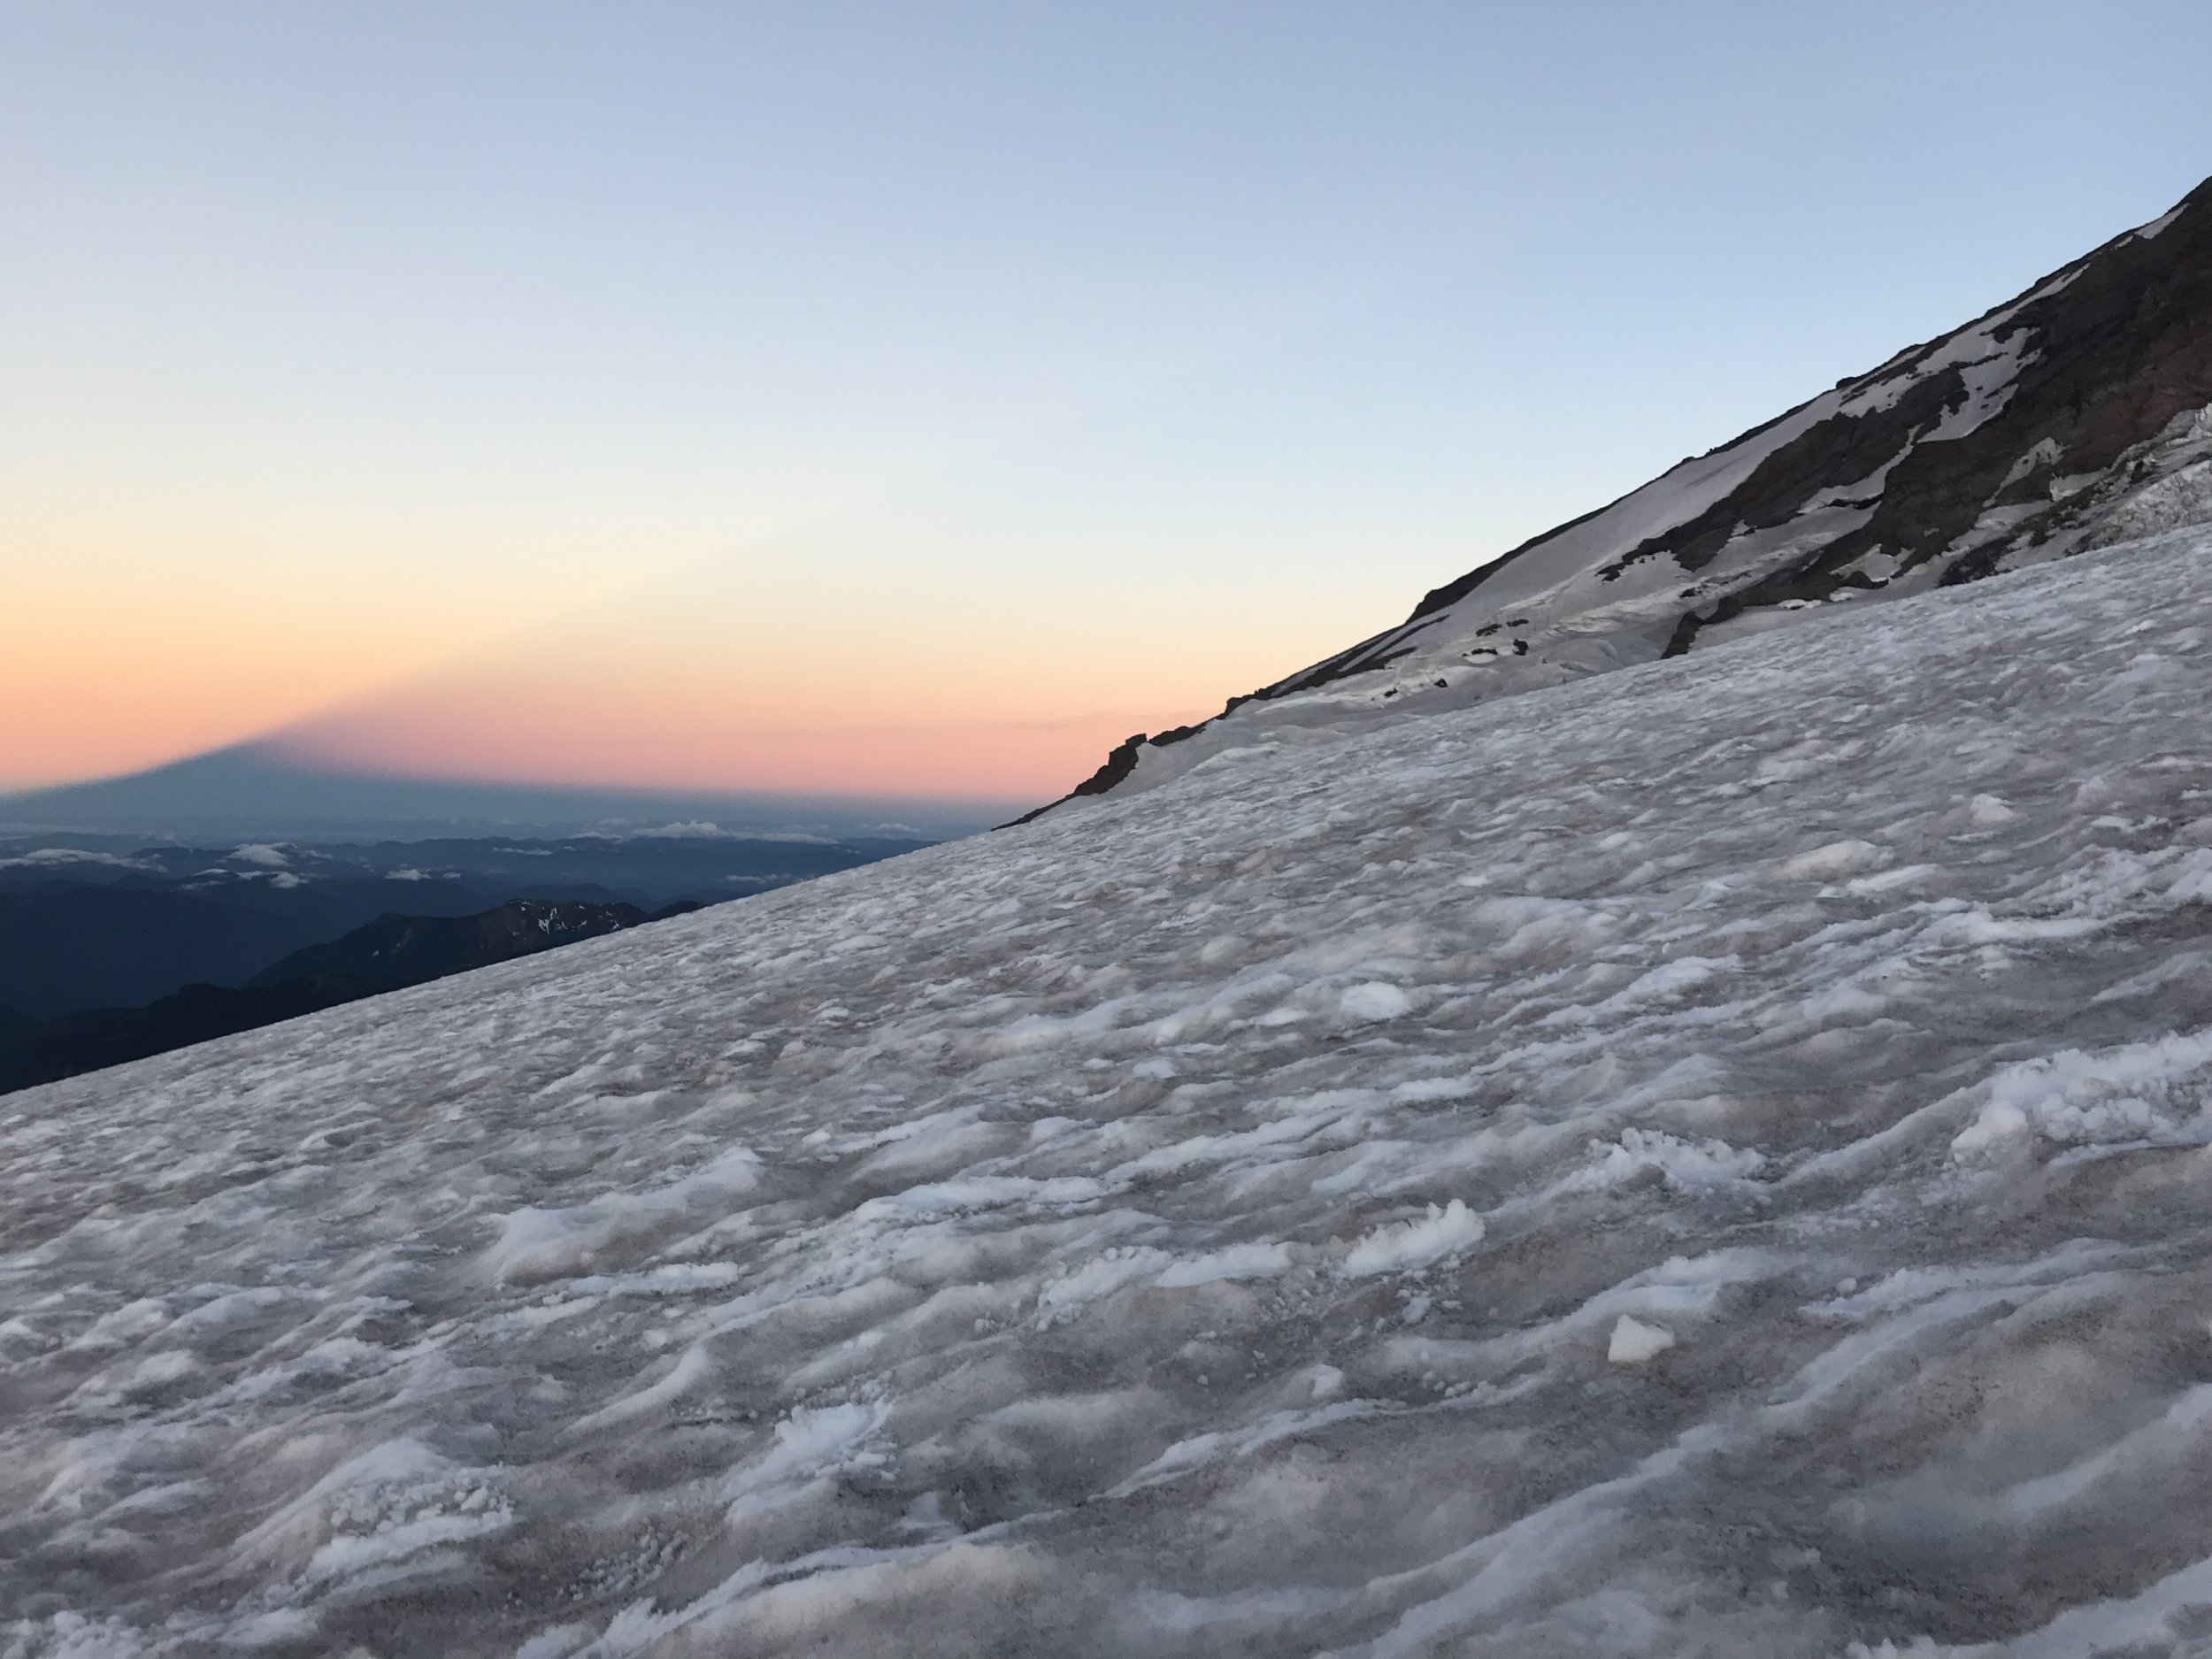 Mt. Rainier's Pyramid Shadow as seen from the approach to Camp Muir during our 2nd ascent in 24 hours.